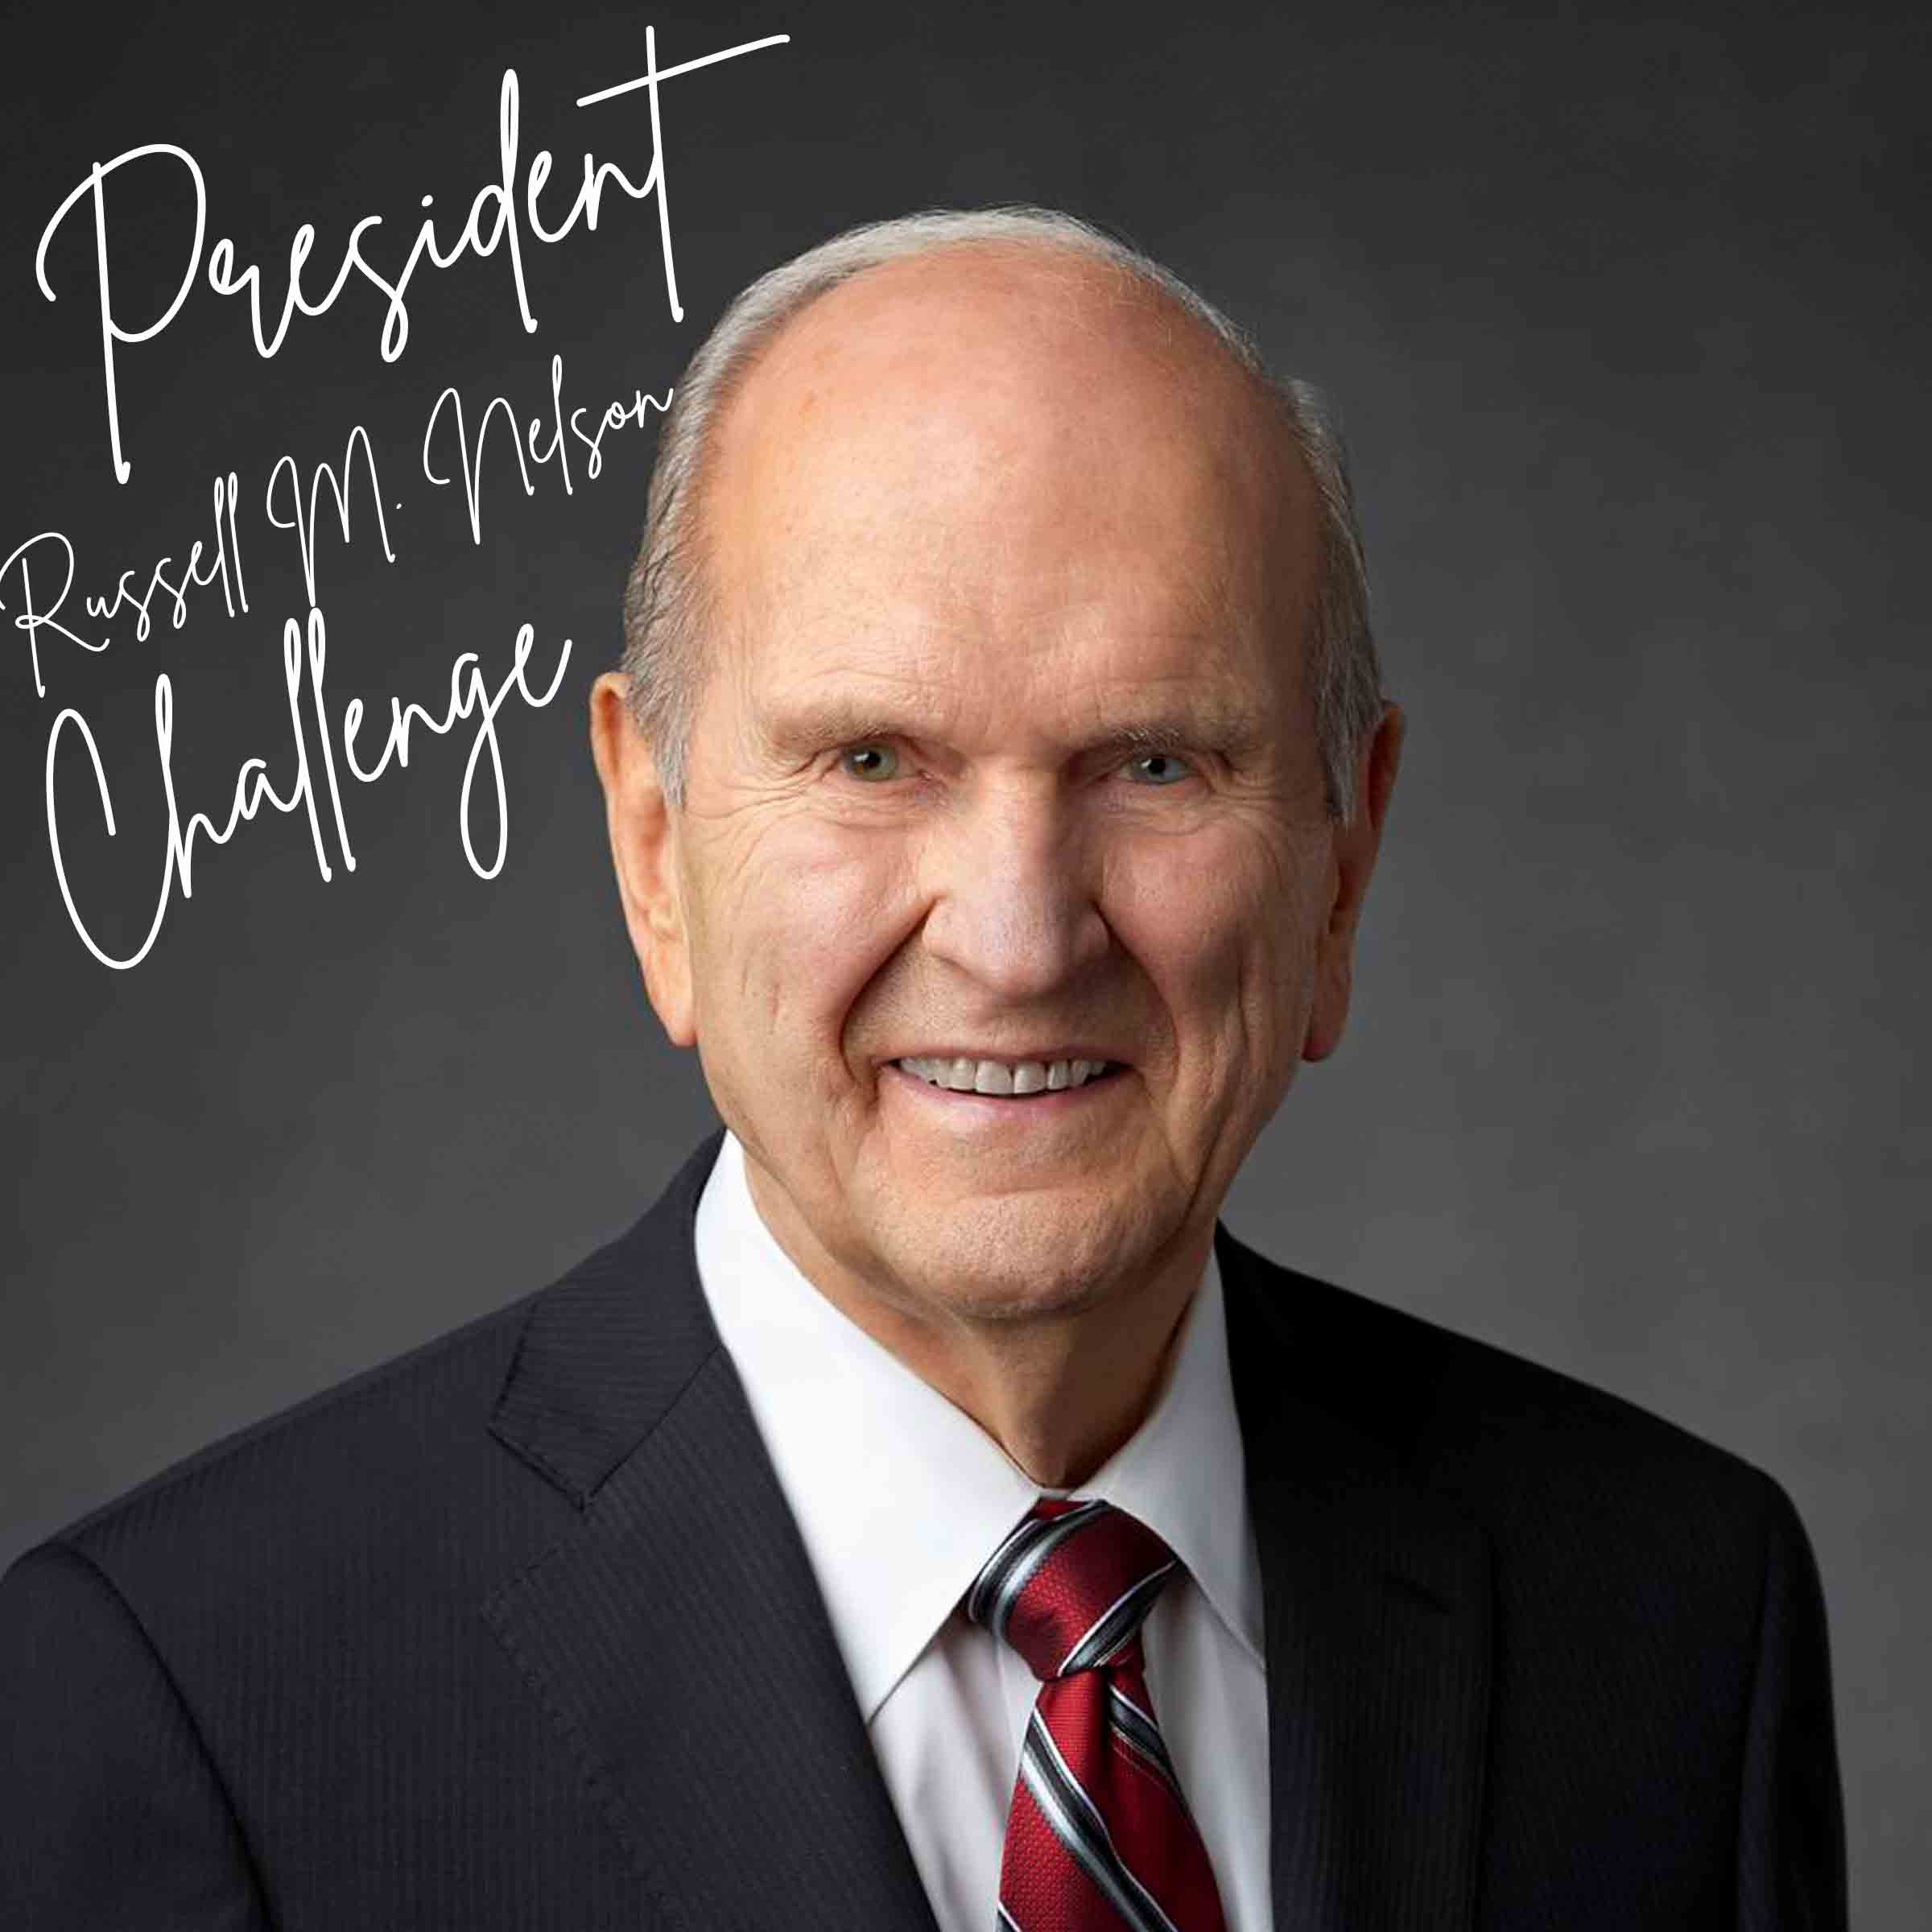 photograph about President Nelson Challenge Printable called President Russell M. Nelson Meeting Discuss Situation